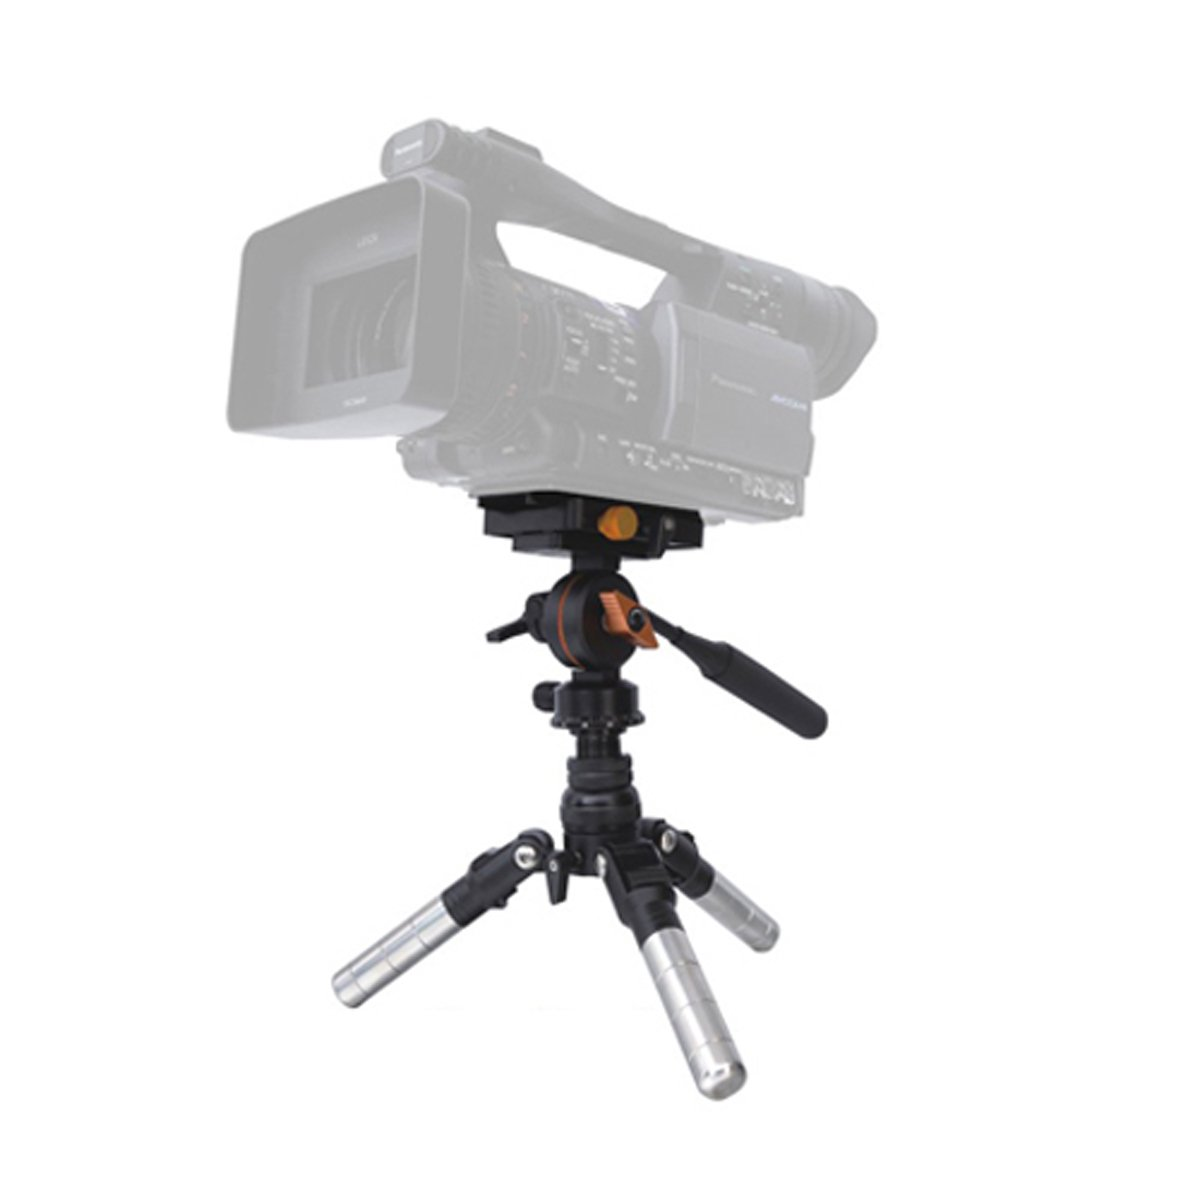 Buy E Image Mc 120 Handheld Multi Function Carbon Stabilizer Vanguard Am 264tv Aluminium Monopod Steadycam With Head For Cameras Online At Low Price In India Camera Reviews Ratings